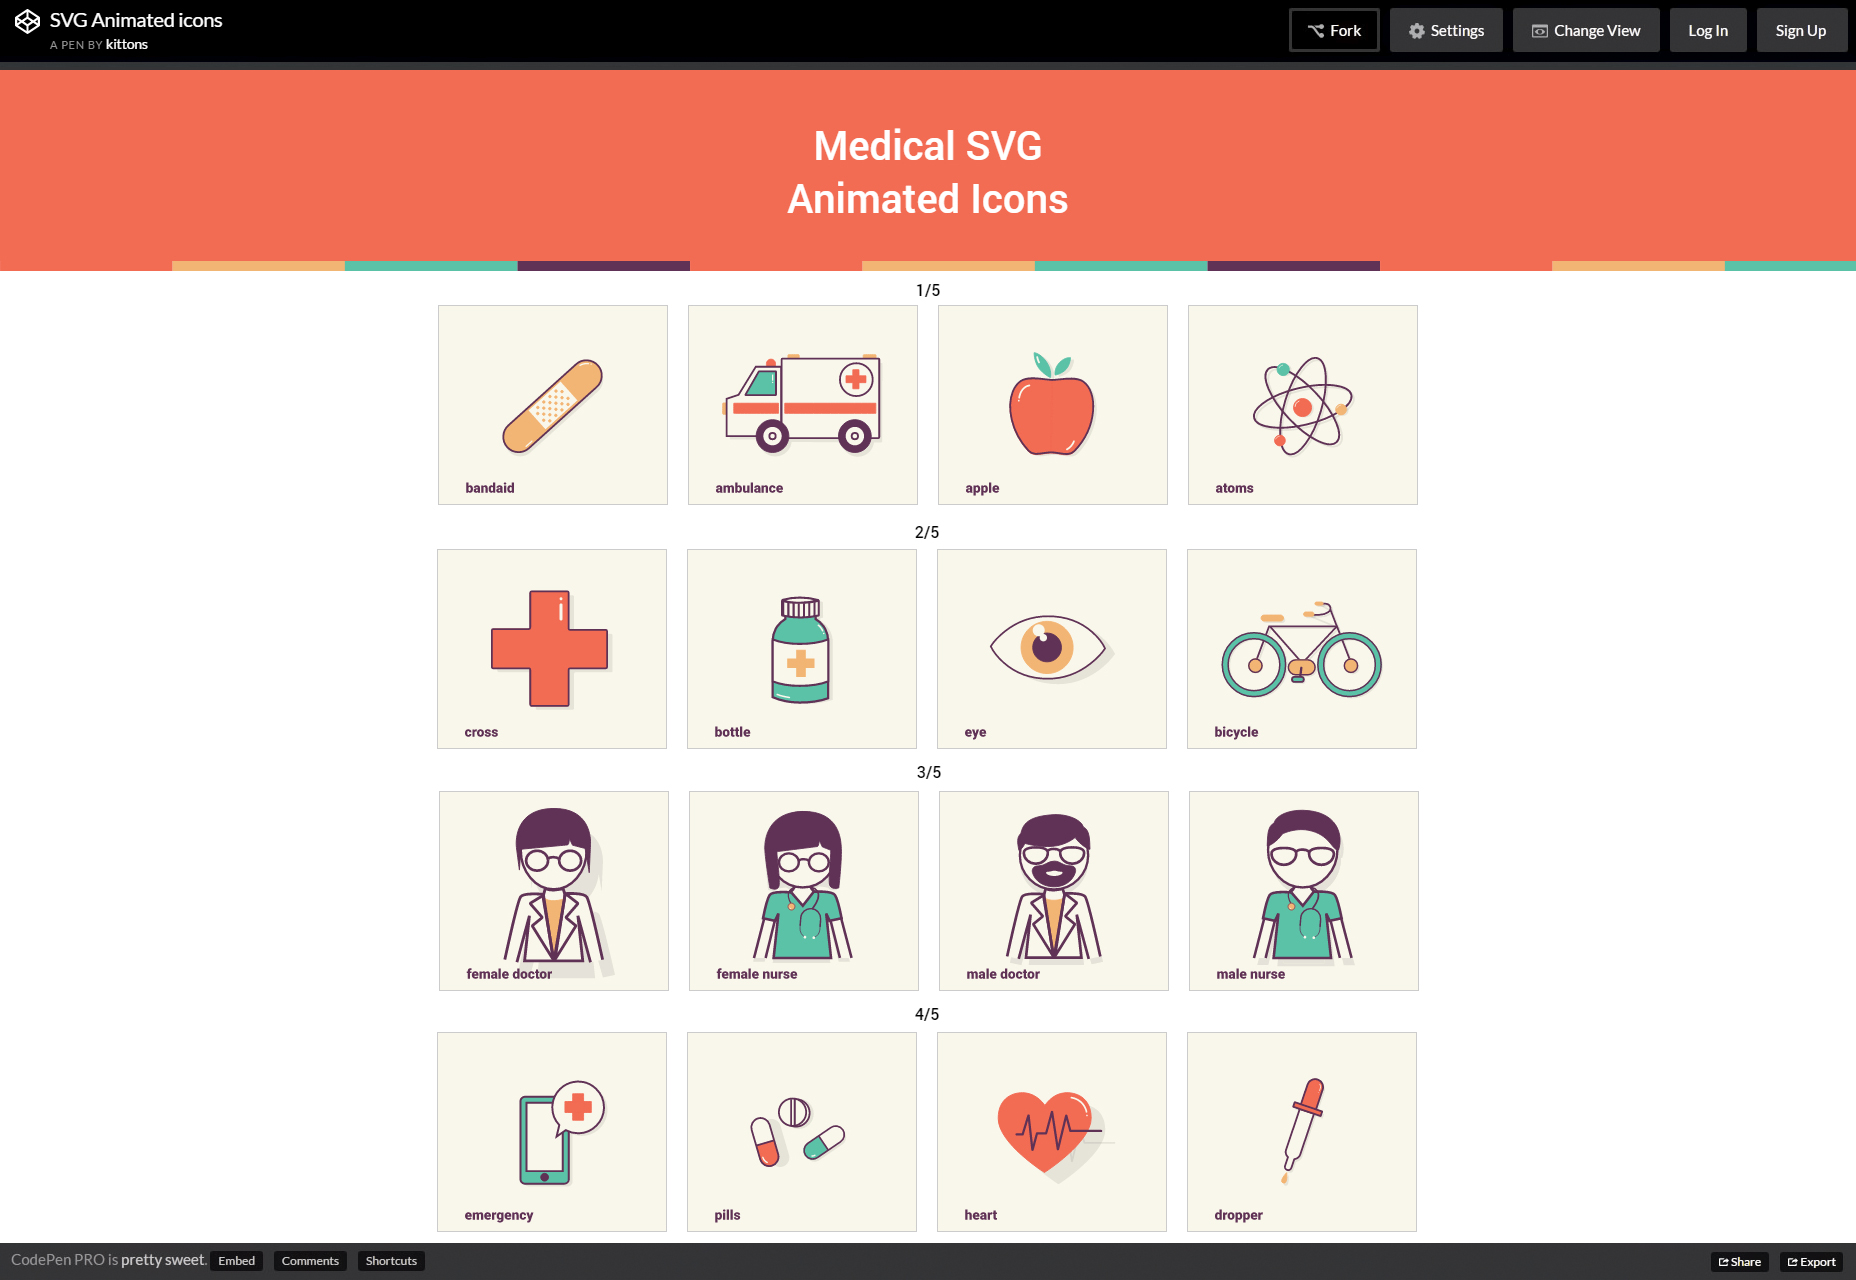 svg-animated-medical-icons